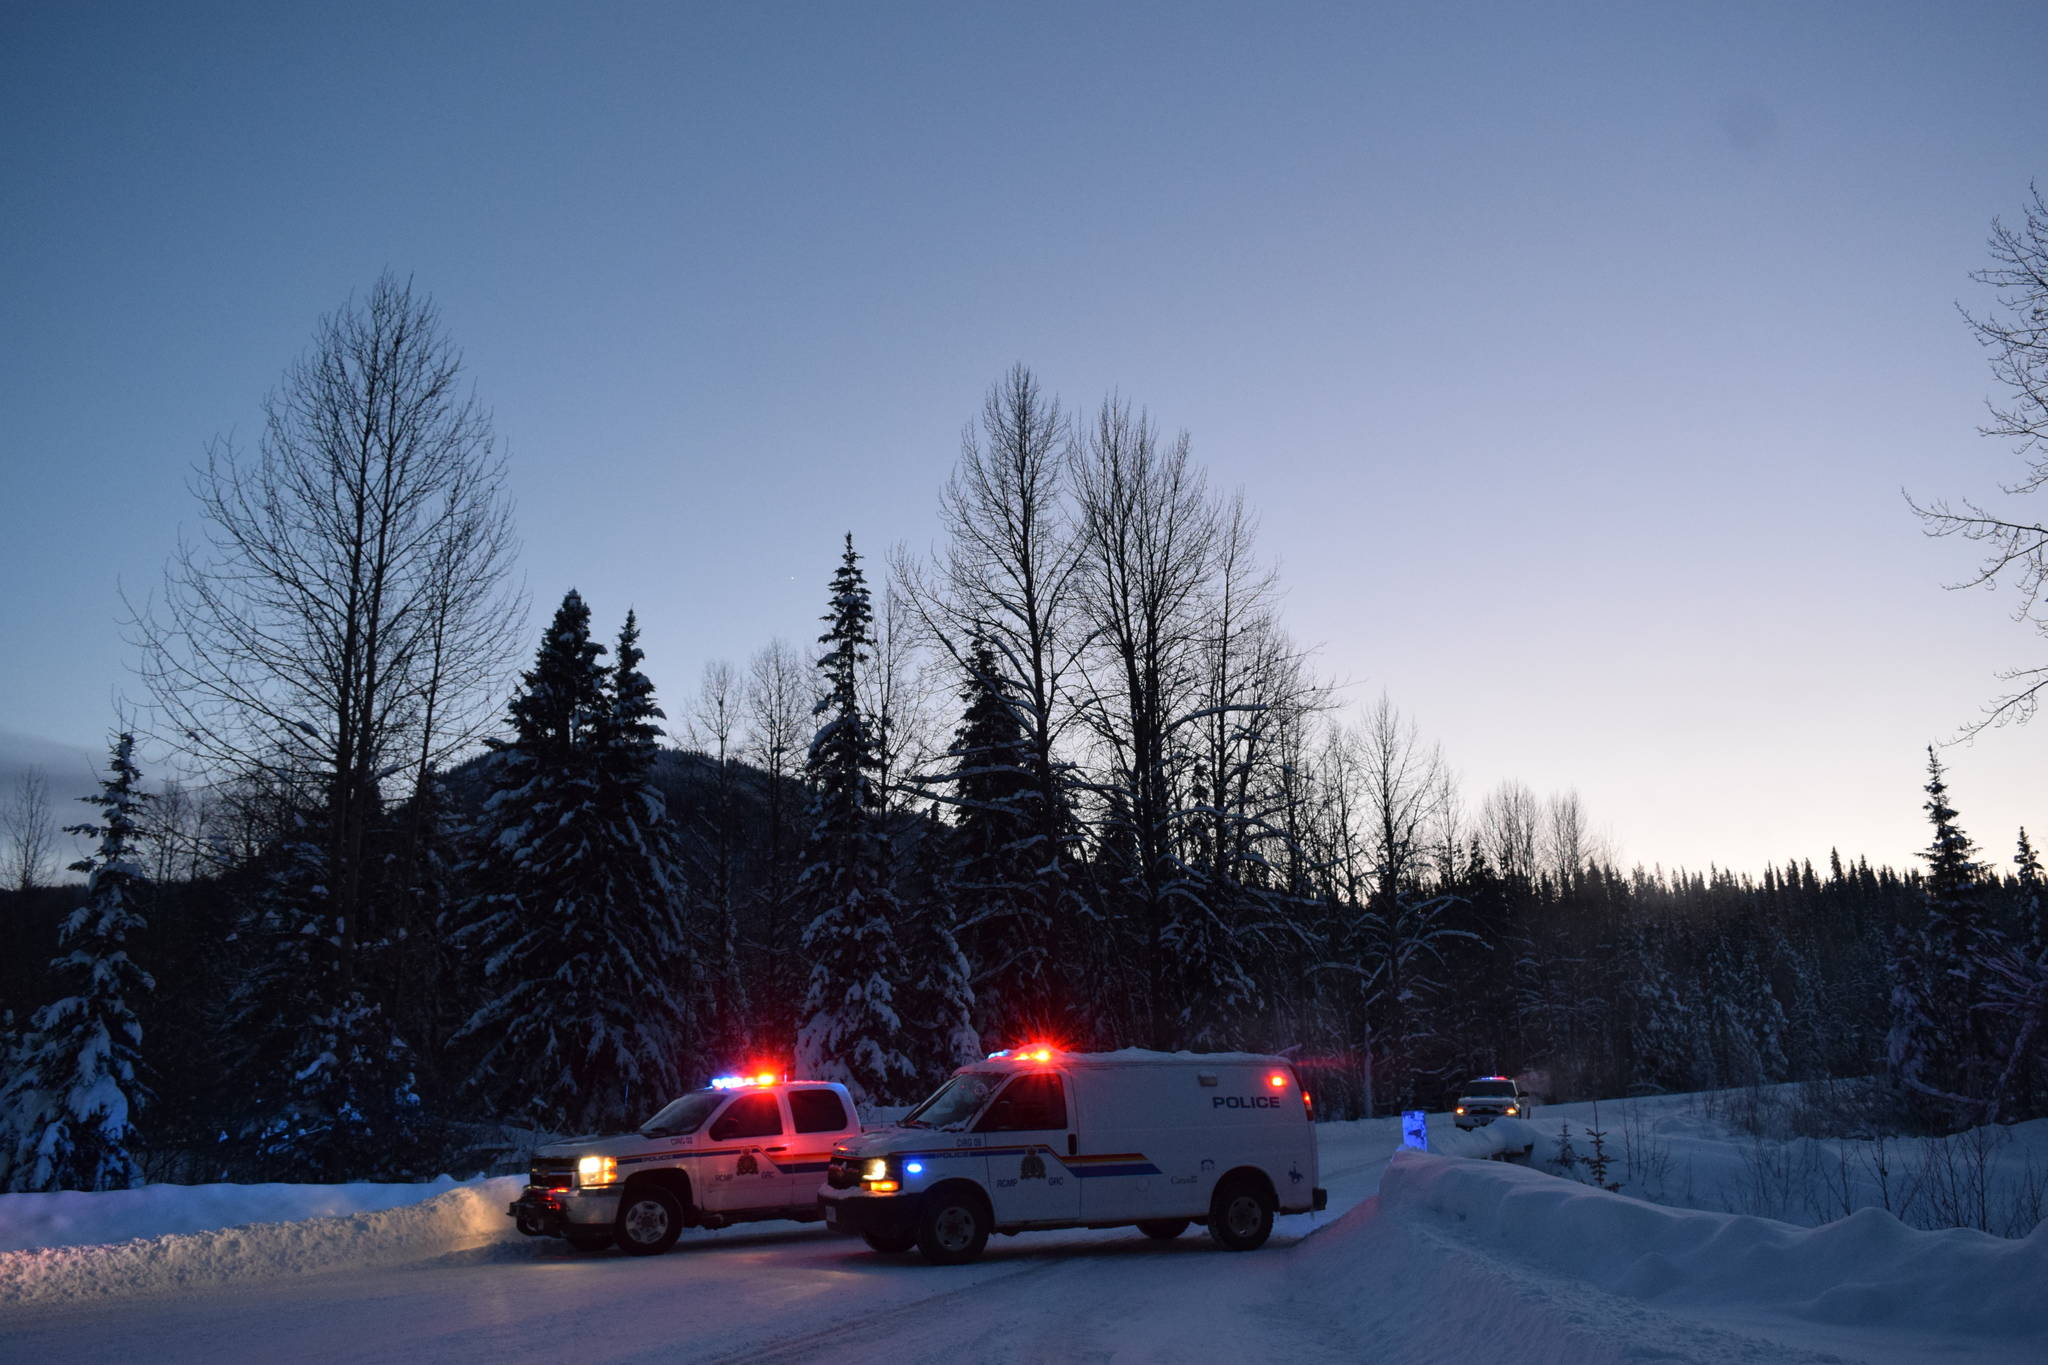 RCMP vehicles pictured at the 27-kilometre mark of Morice West Forest Service Road. The RCMP has said they have set up the check point to assure safety and mitigate concerns surrounding a number of hazardous items found in close proximity to a number of felled logs further down the road. (Trevor Hewitt photo)